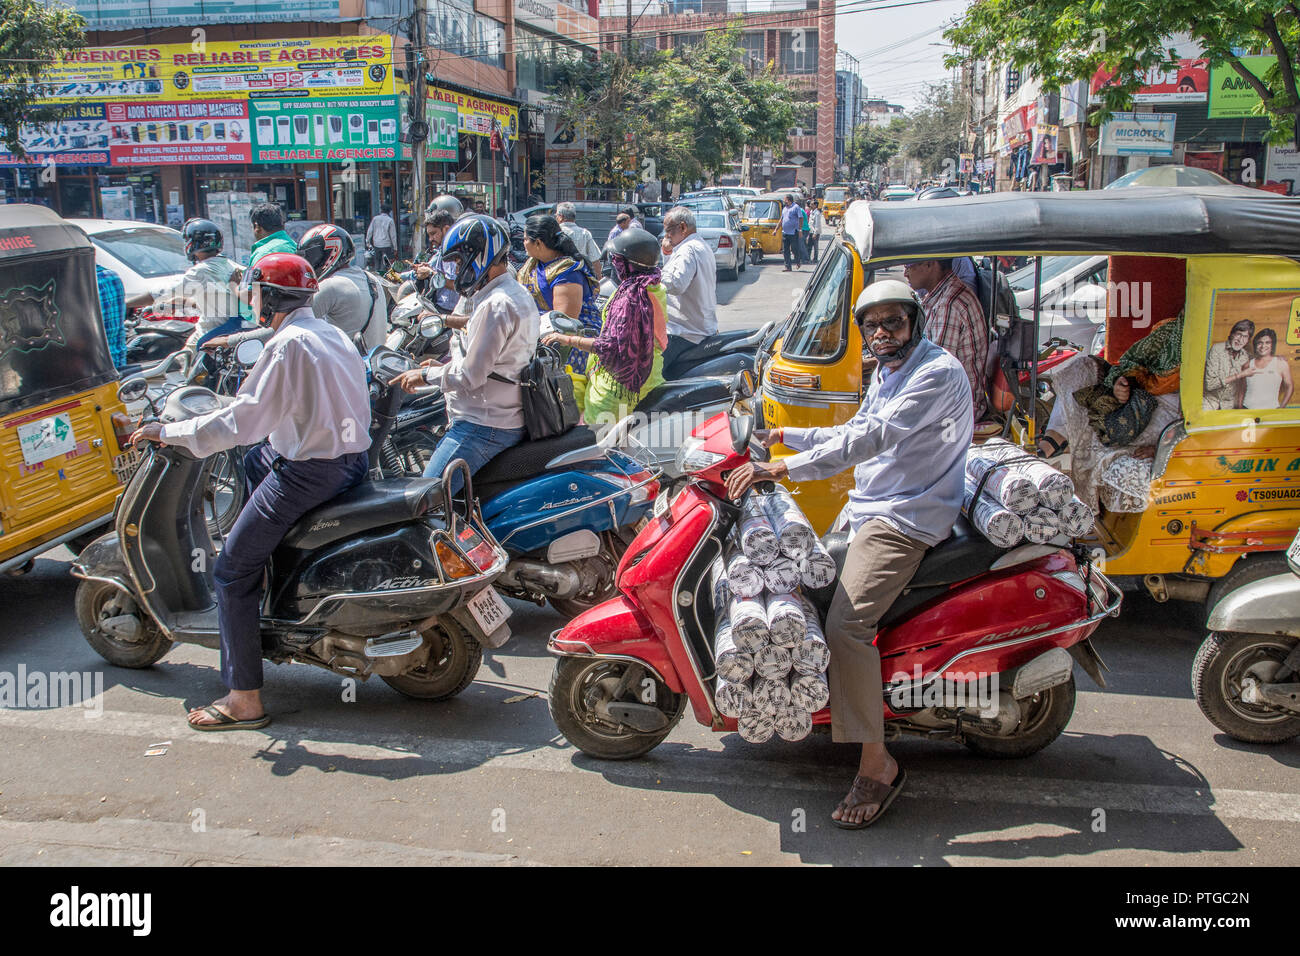 Constipated traffic in the city centre. Photographed in Ahmedabad, Gujarat, India - Stock Image